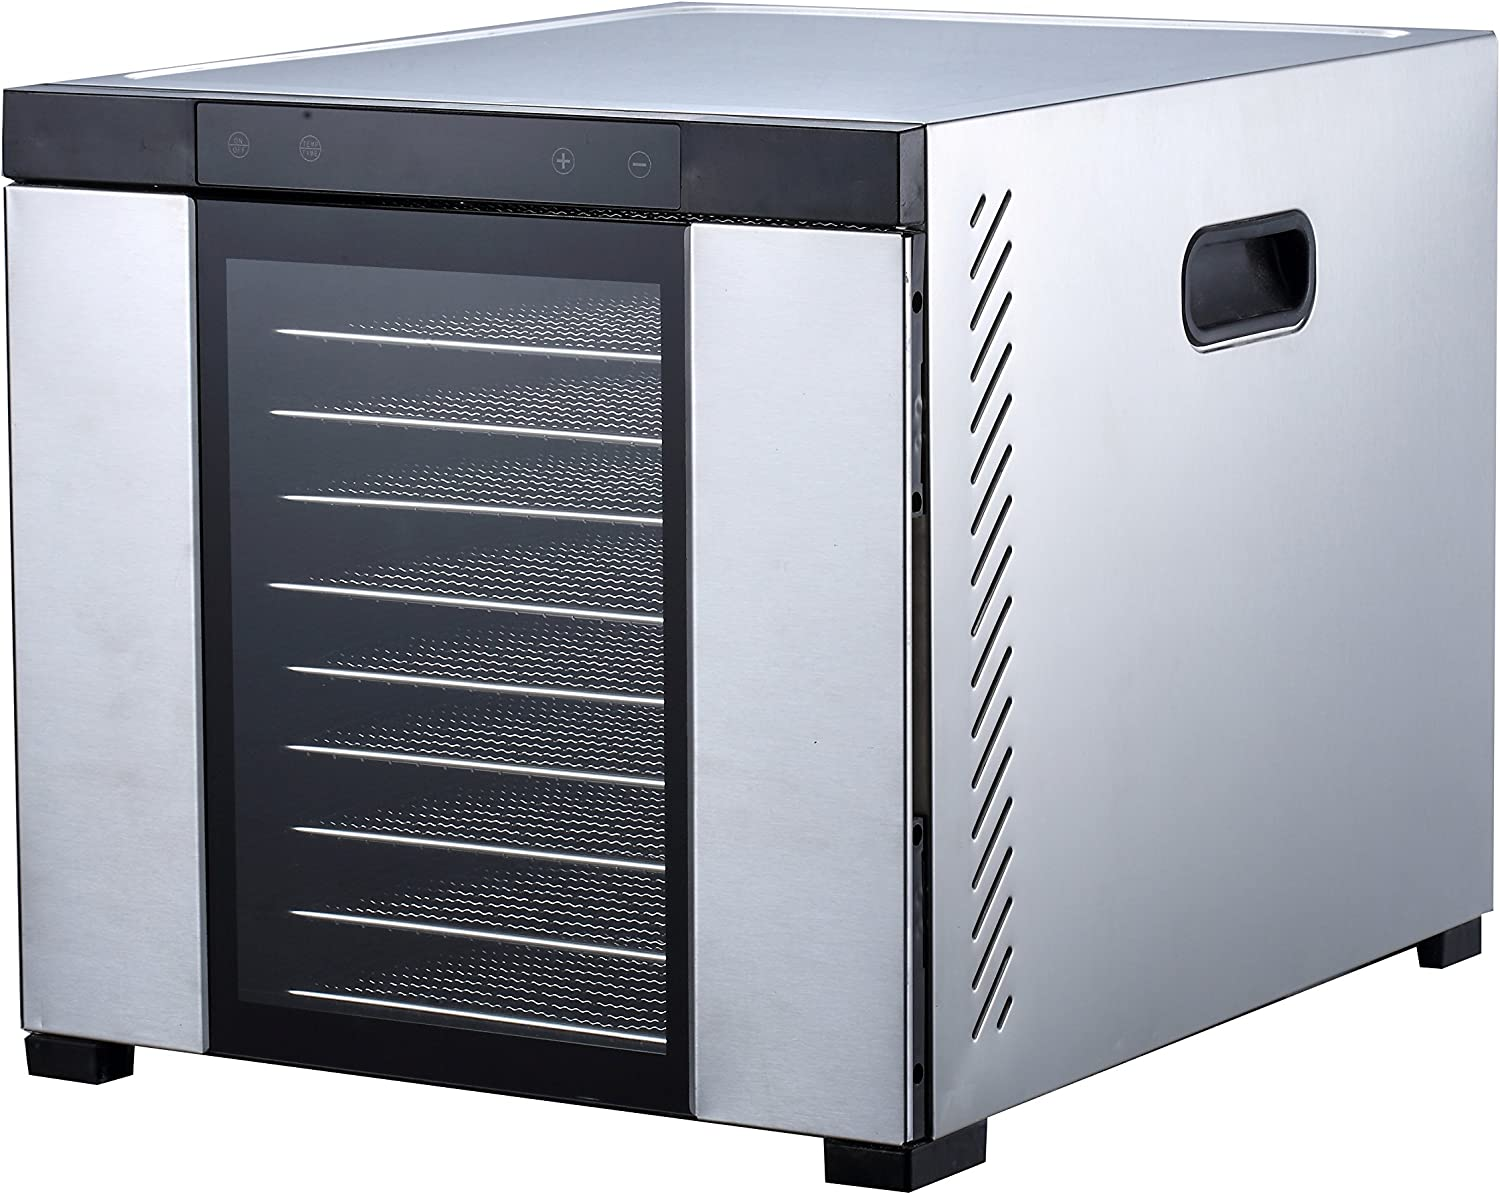 "Samson ""Silent"" 10 Tray ALL Stainless Steel Dehydrator - Digital Controls - Glass Door"